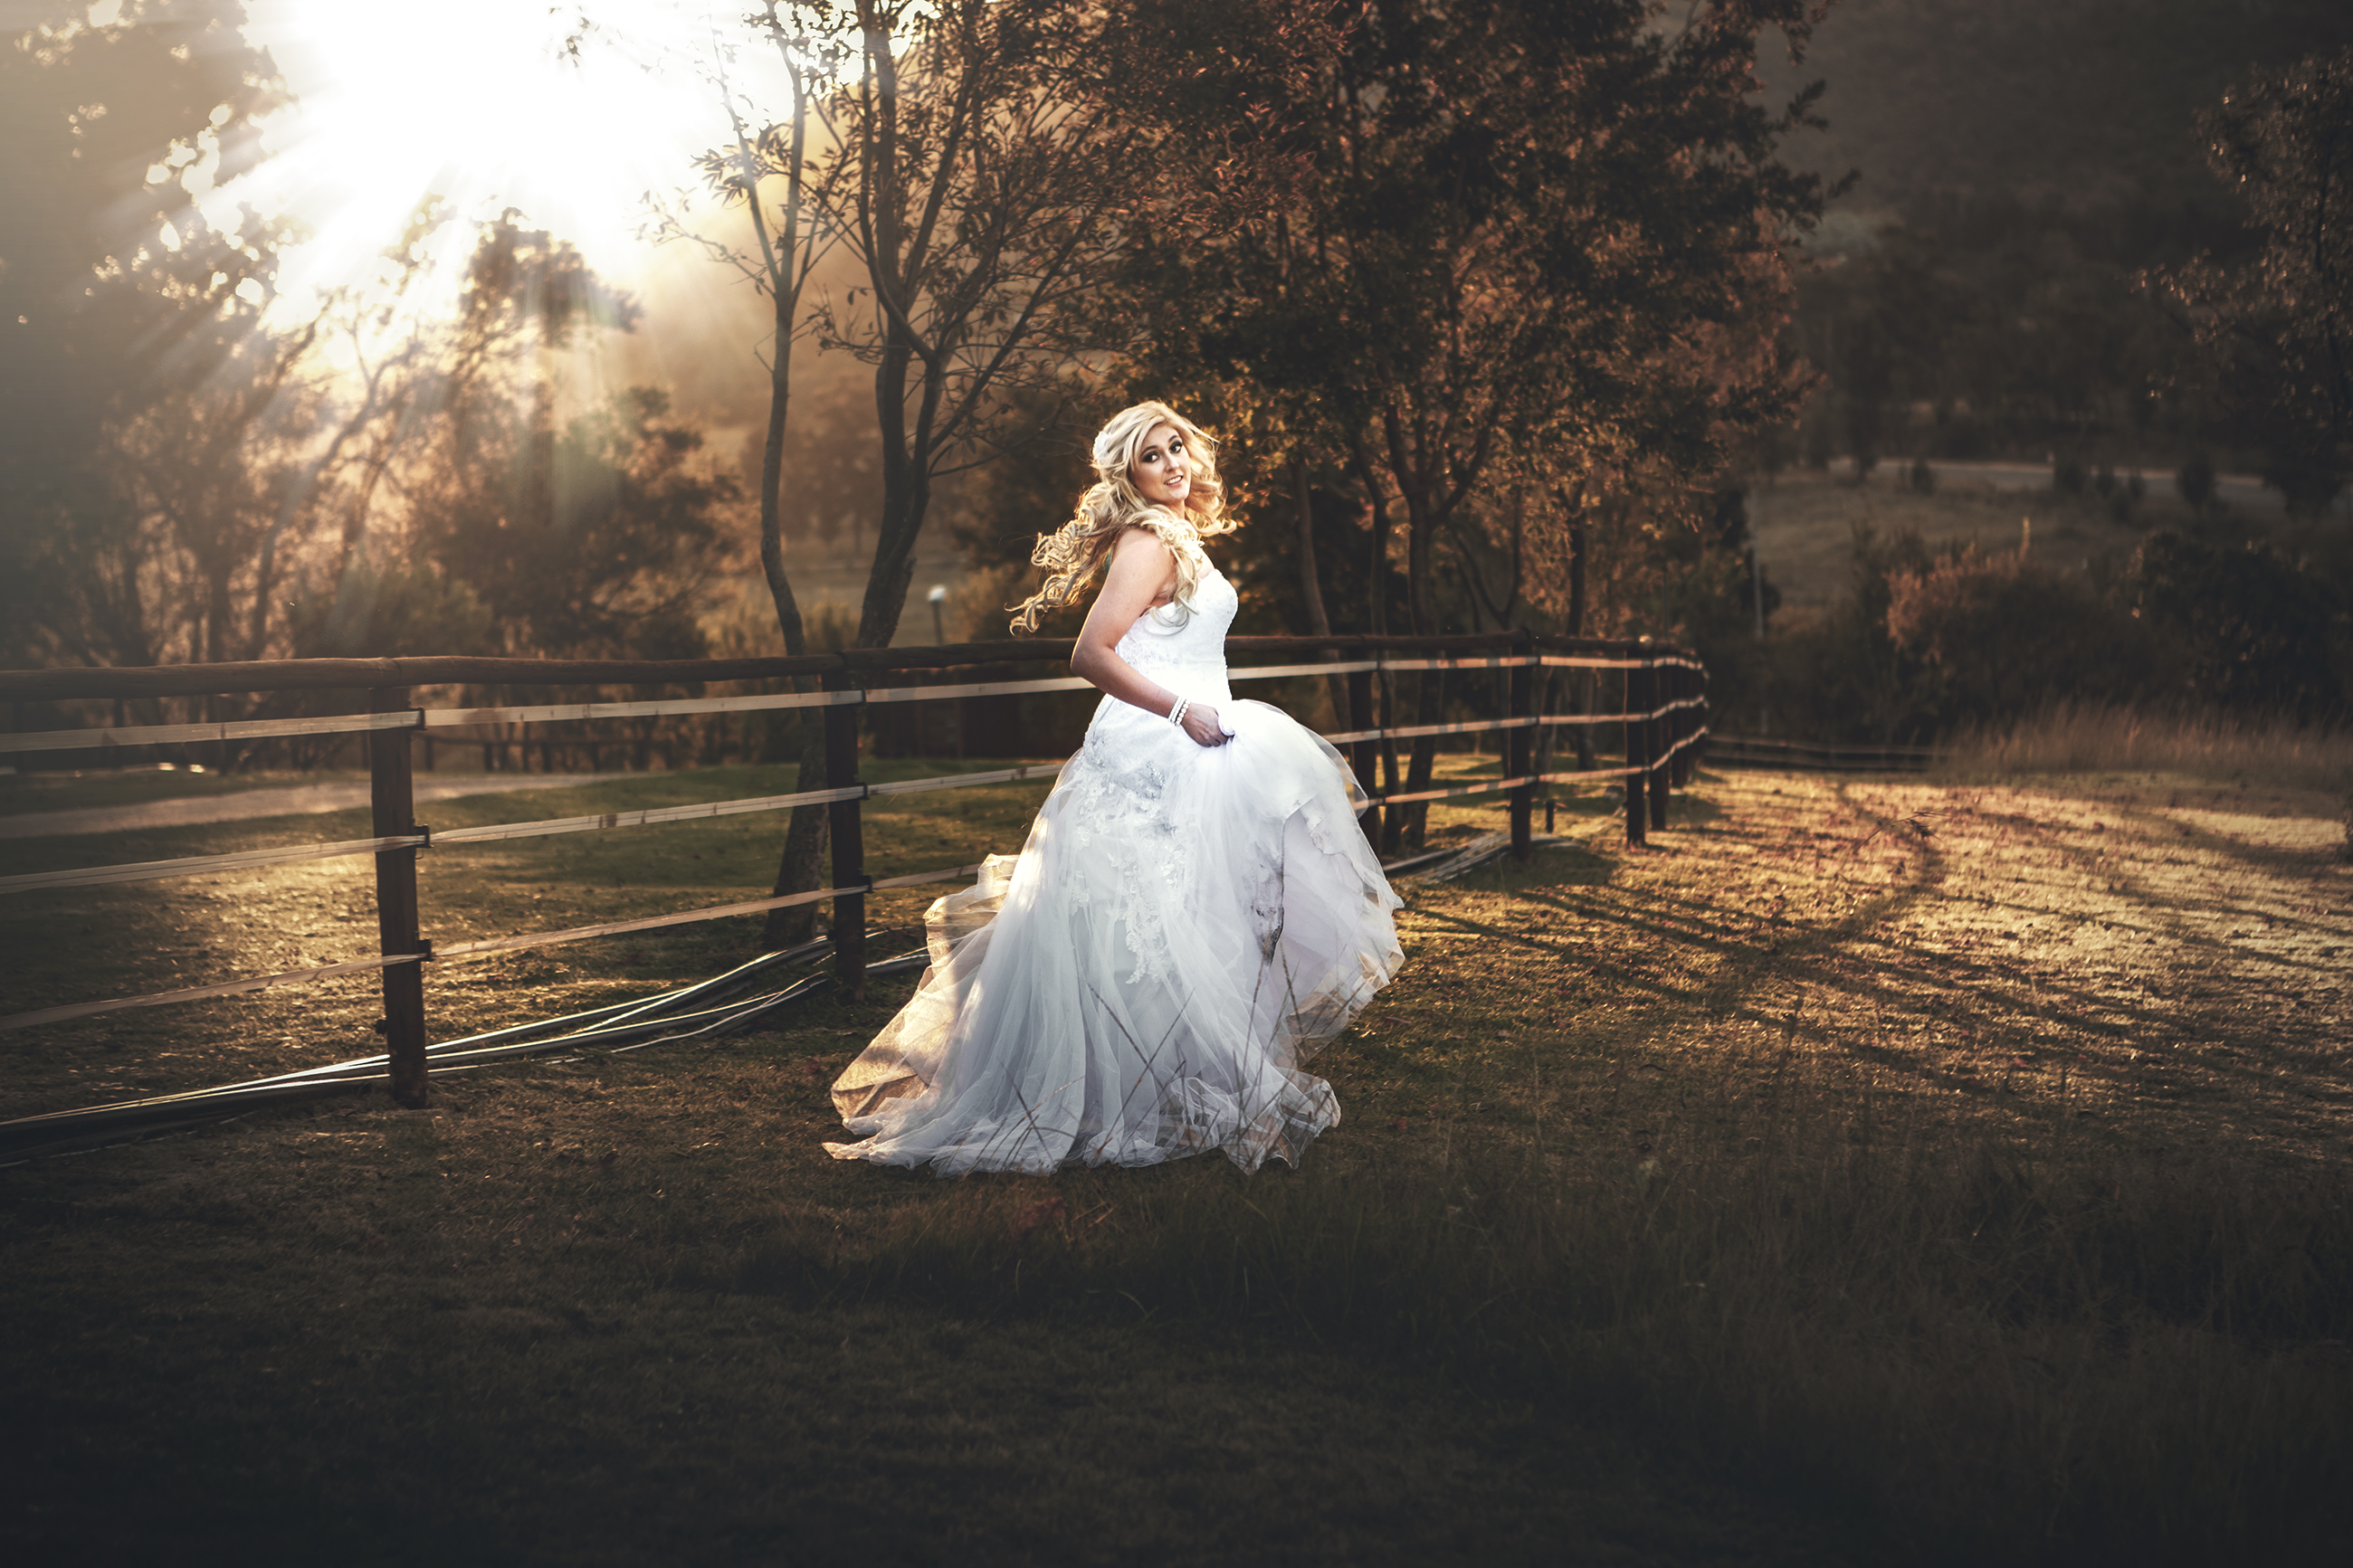 Darrell Fraser Cradle Valley Wedding Venue Muldersdrift Erda Russell